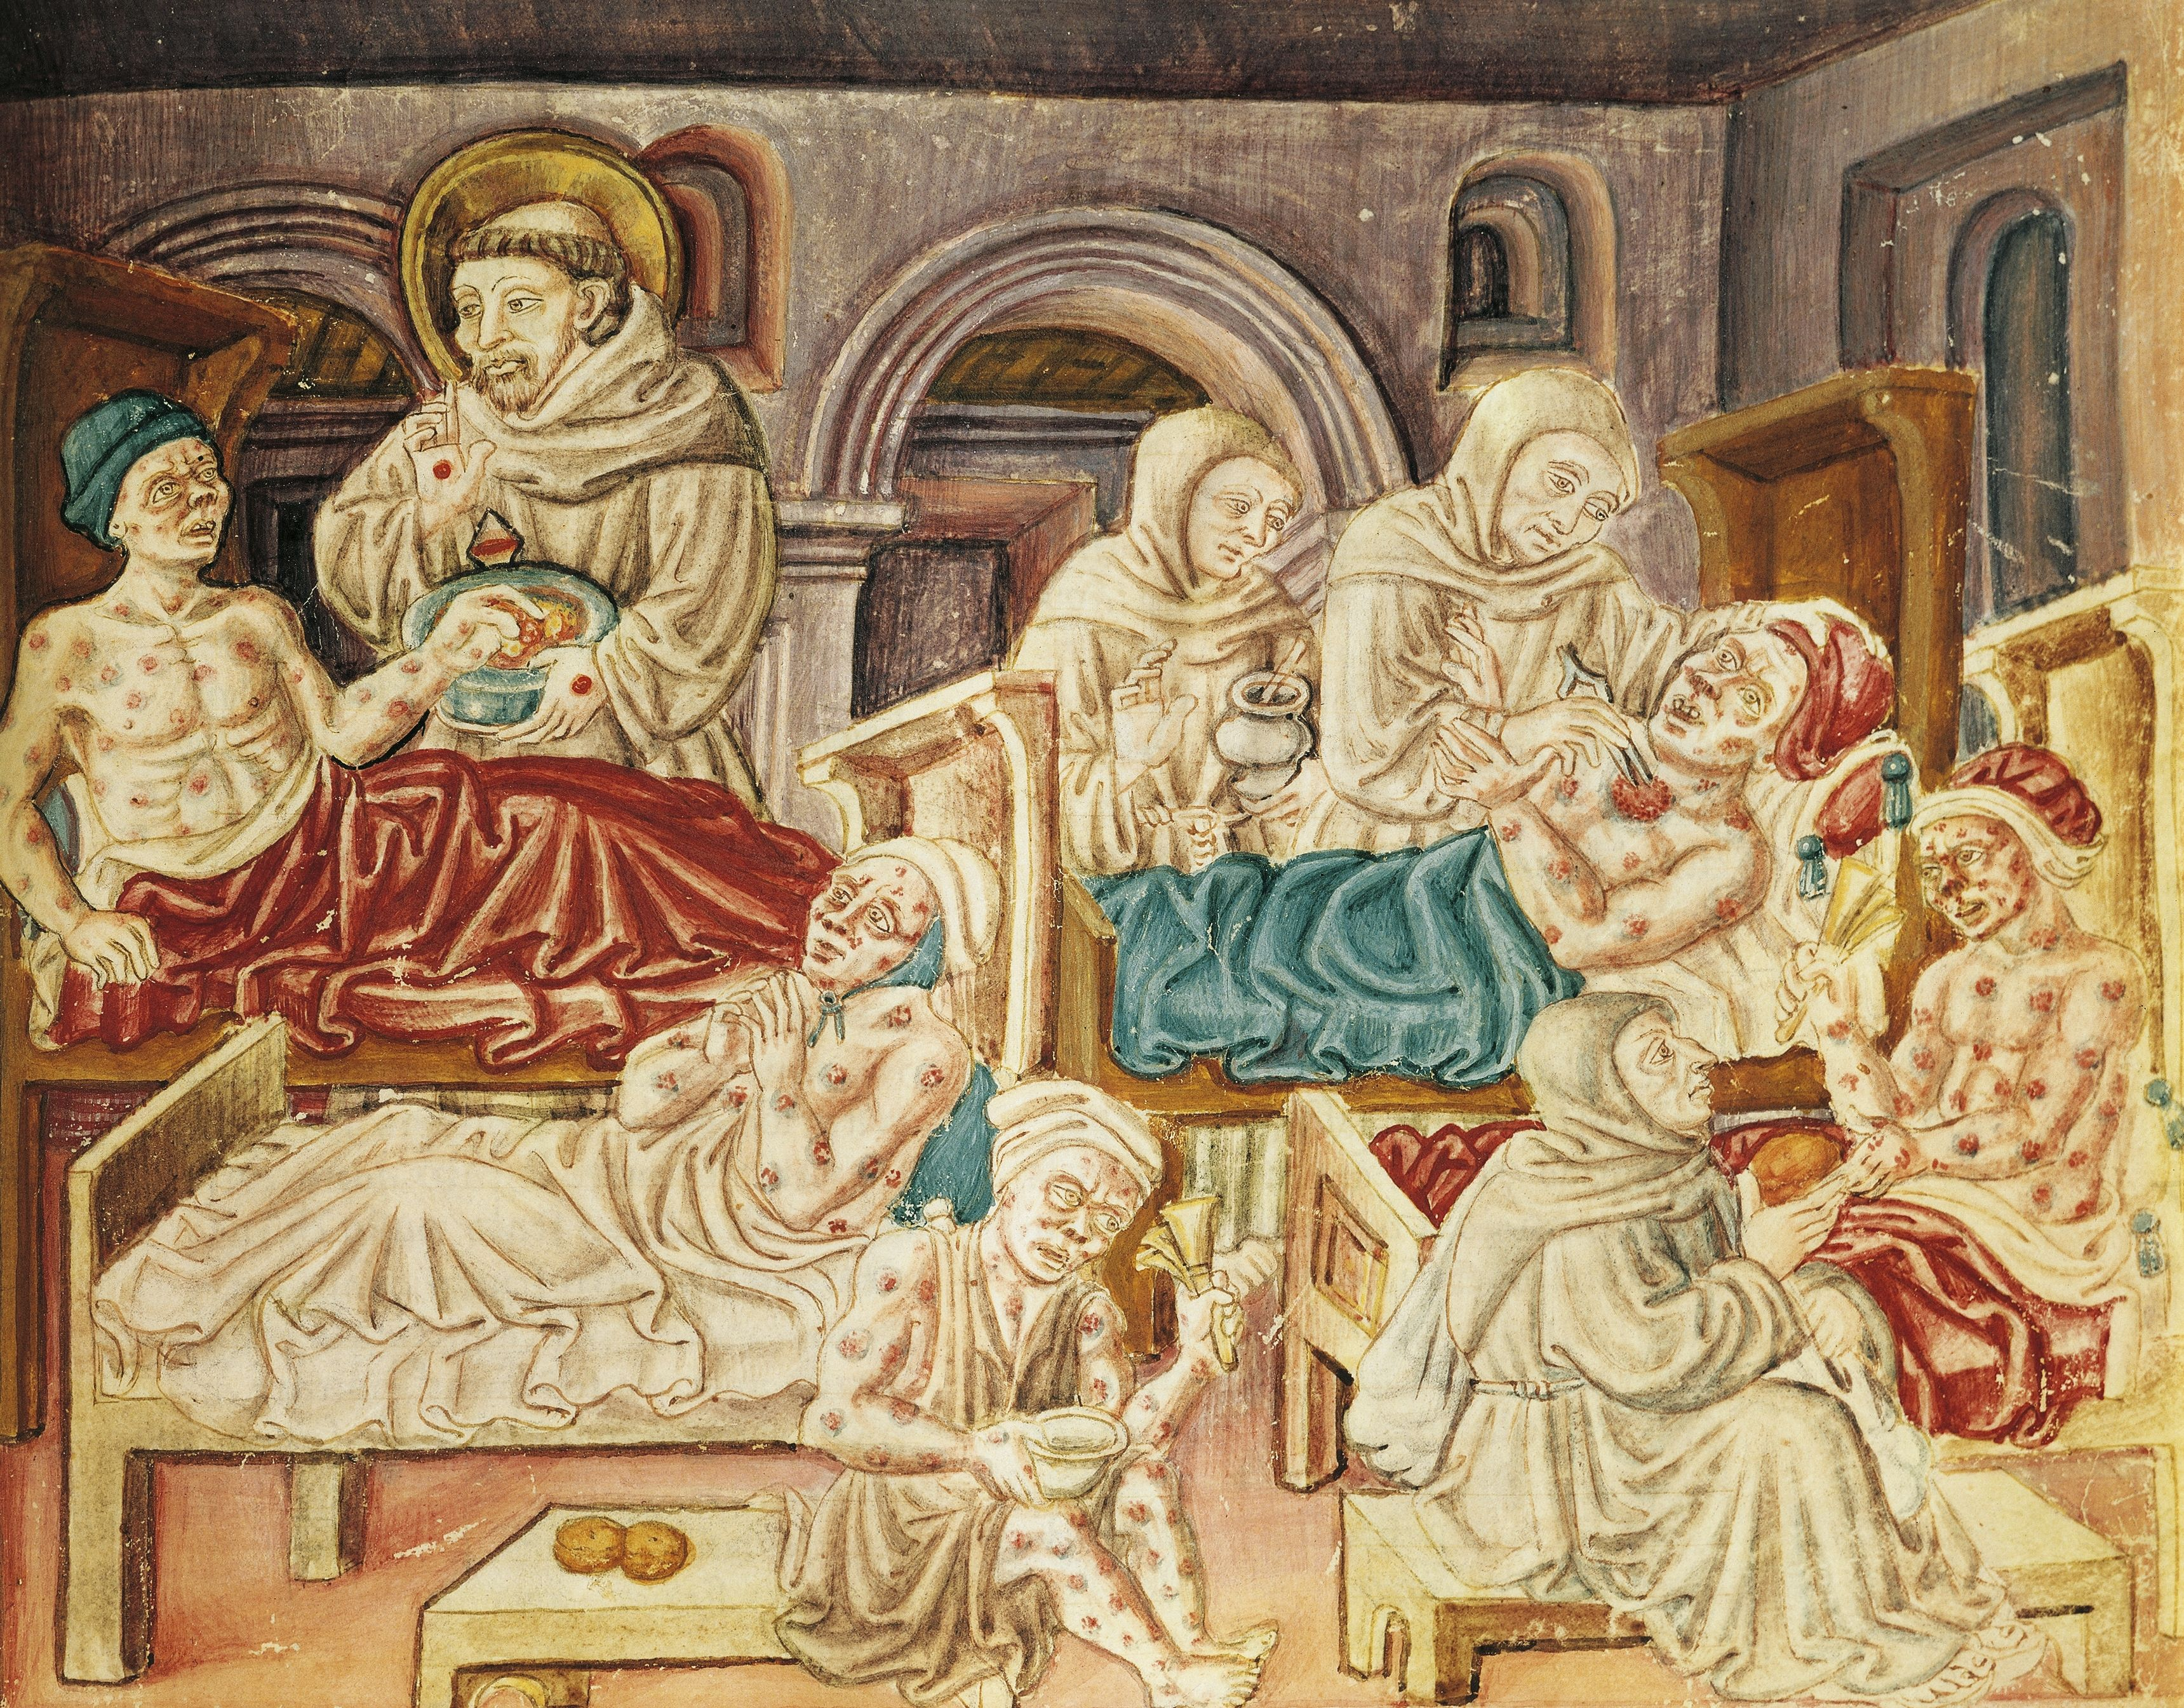 HOSPITAL; MIDDLE AGES; CHRISTIAN; LEPROSY